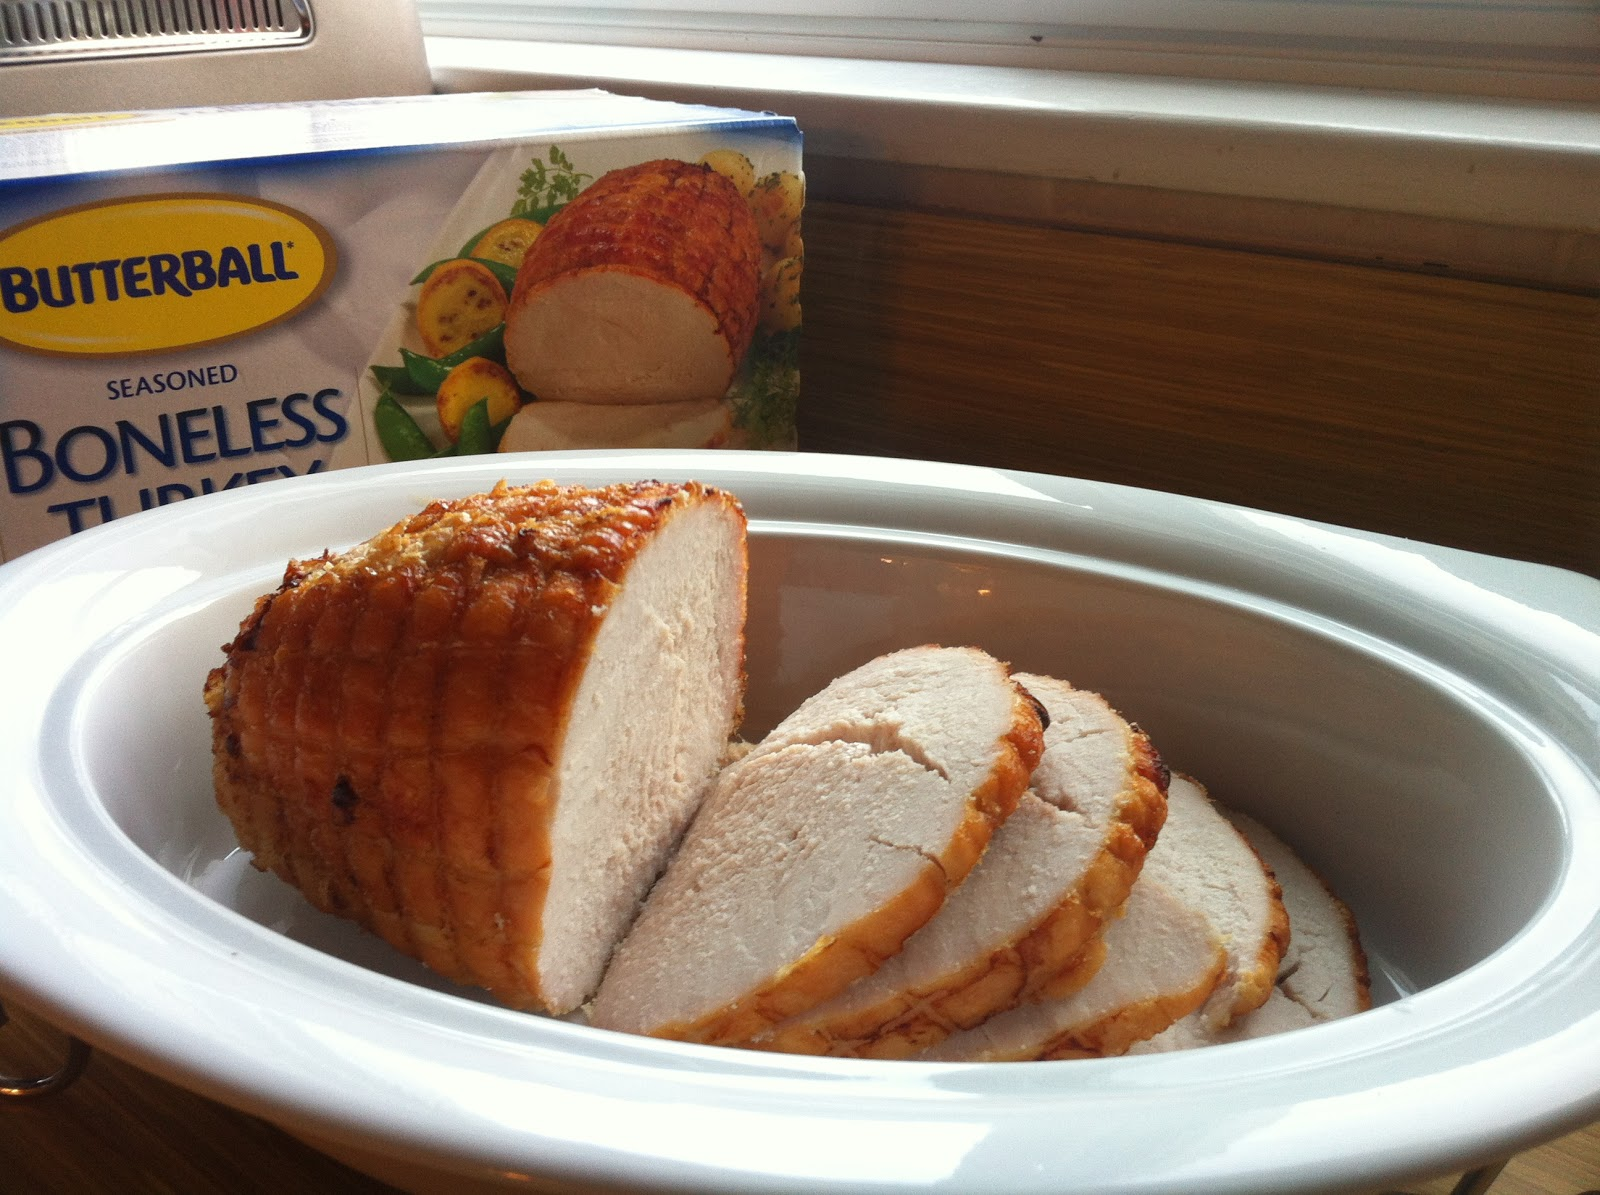 Information boneless turkey for 8 adults